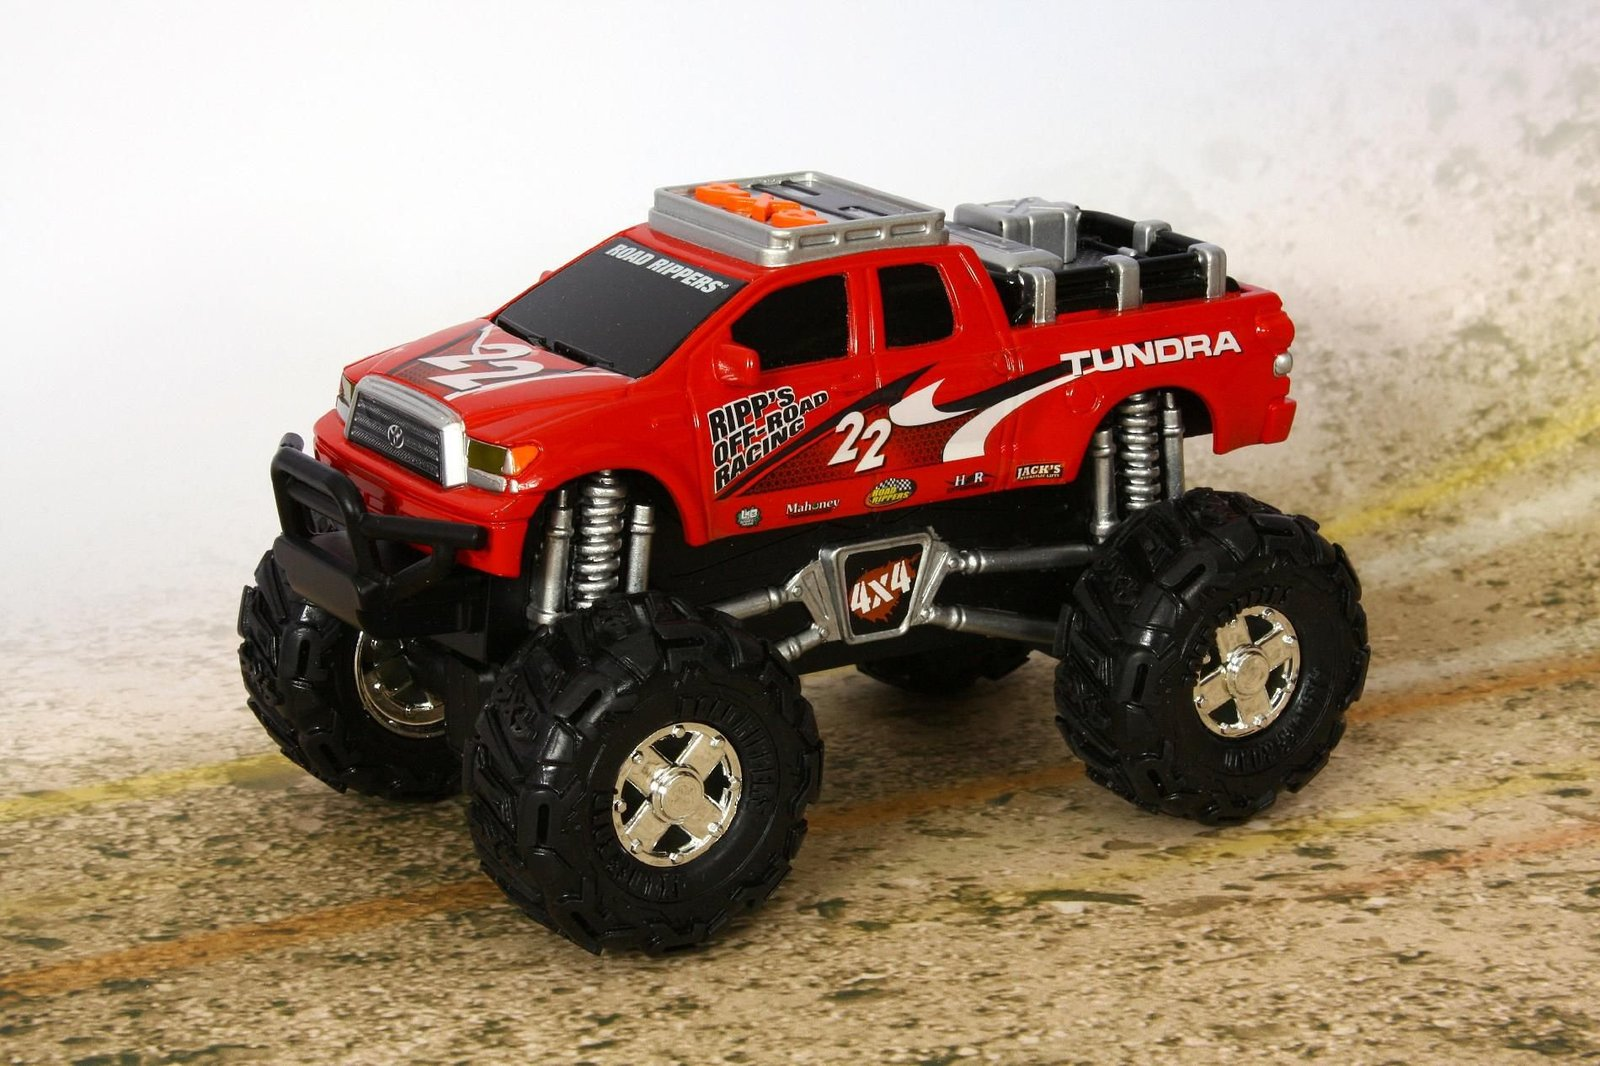 Road Rippers, Off-Road 4x4, Toyota Tundra by Toy State